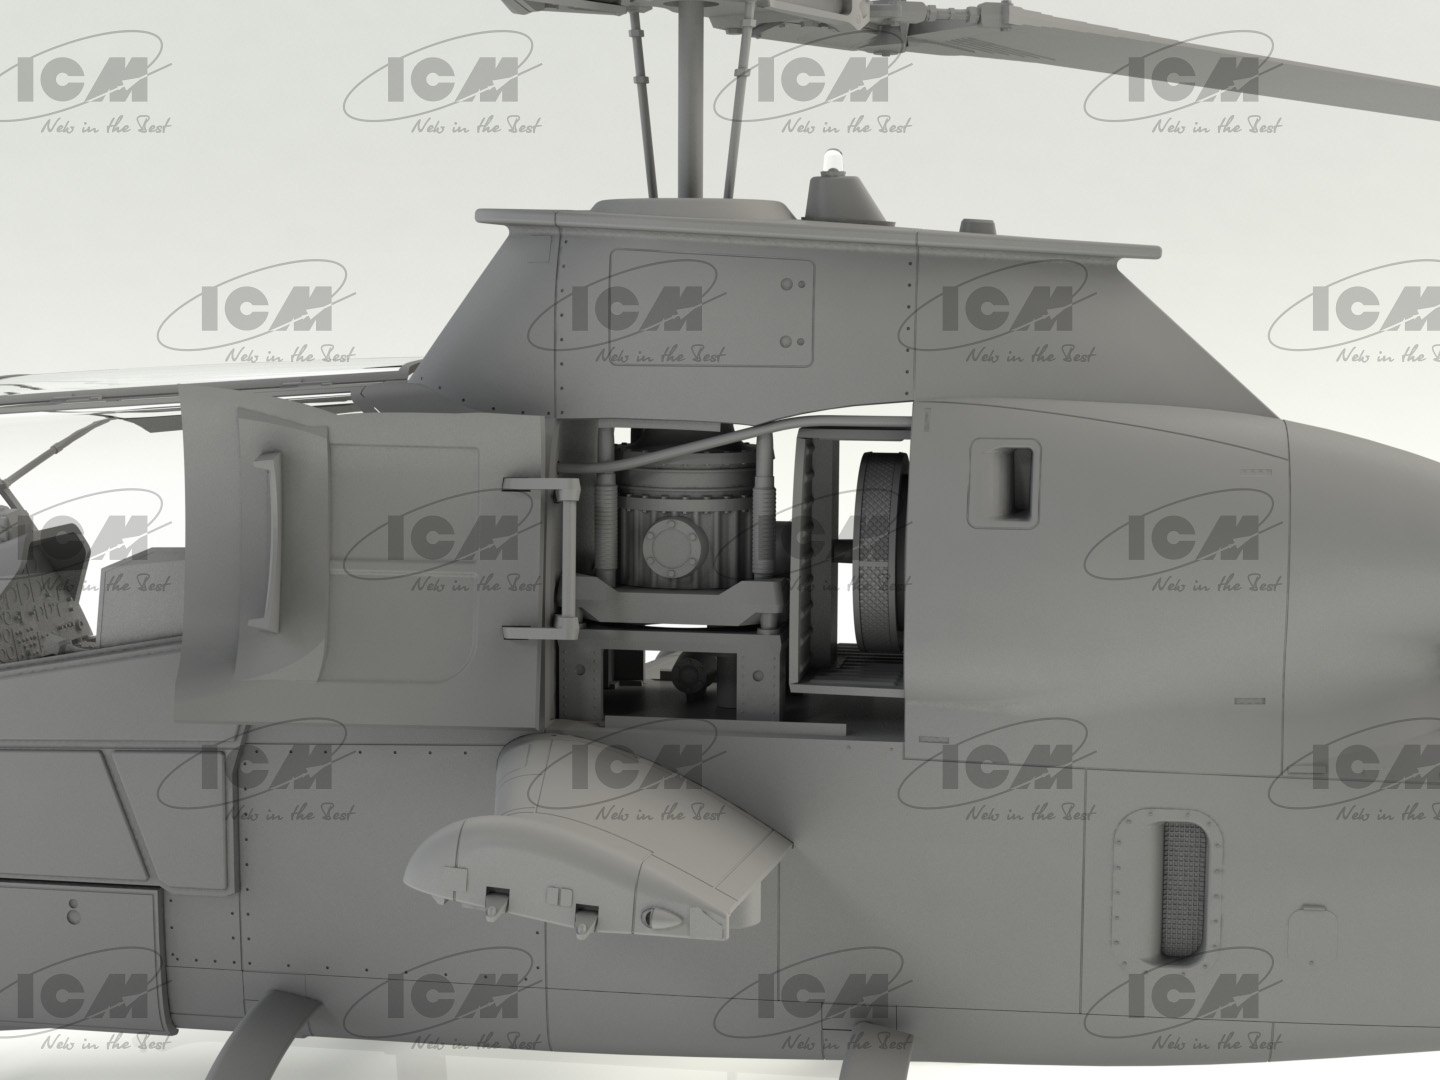 32060_AG-1G_Early_R1 копия (2)